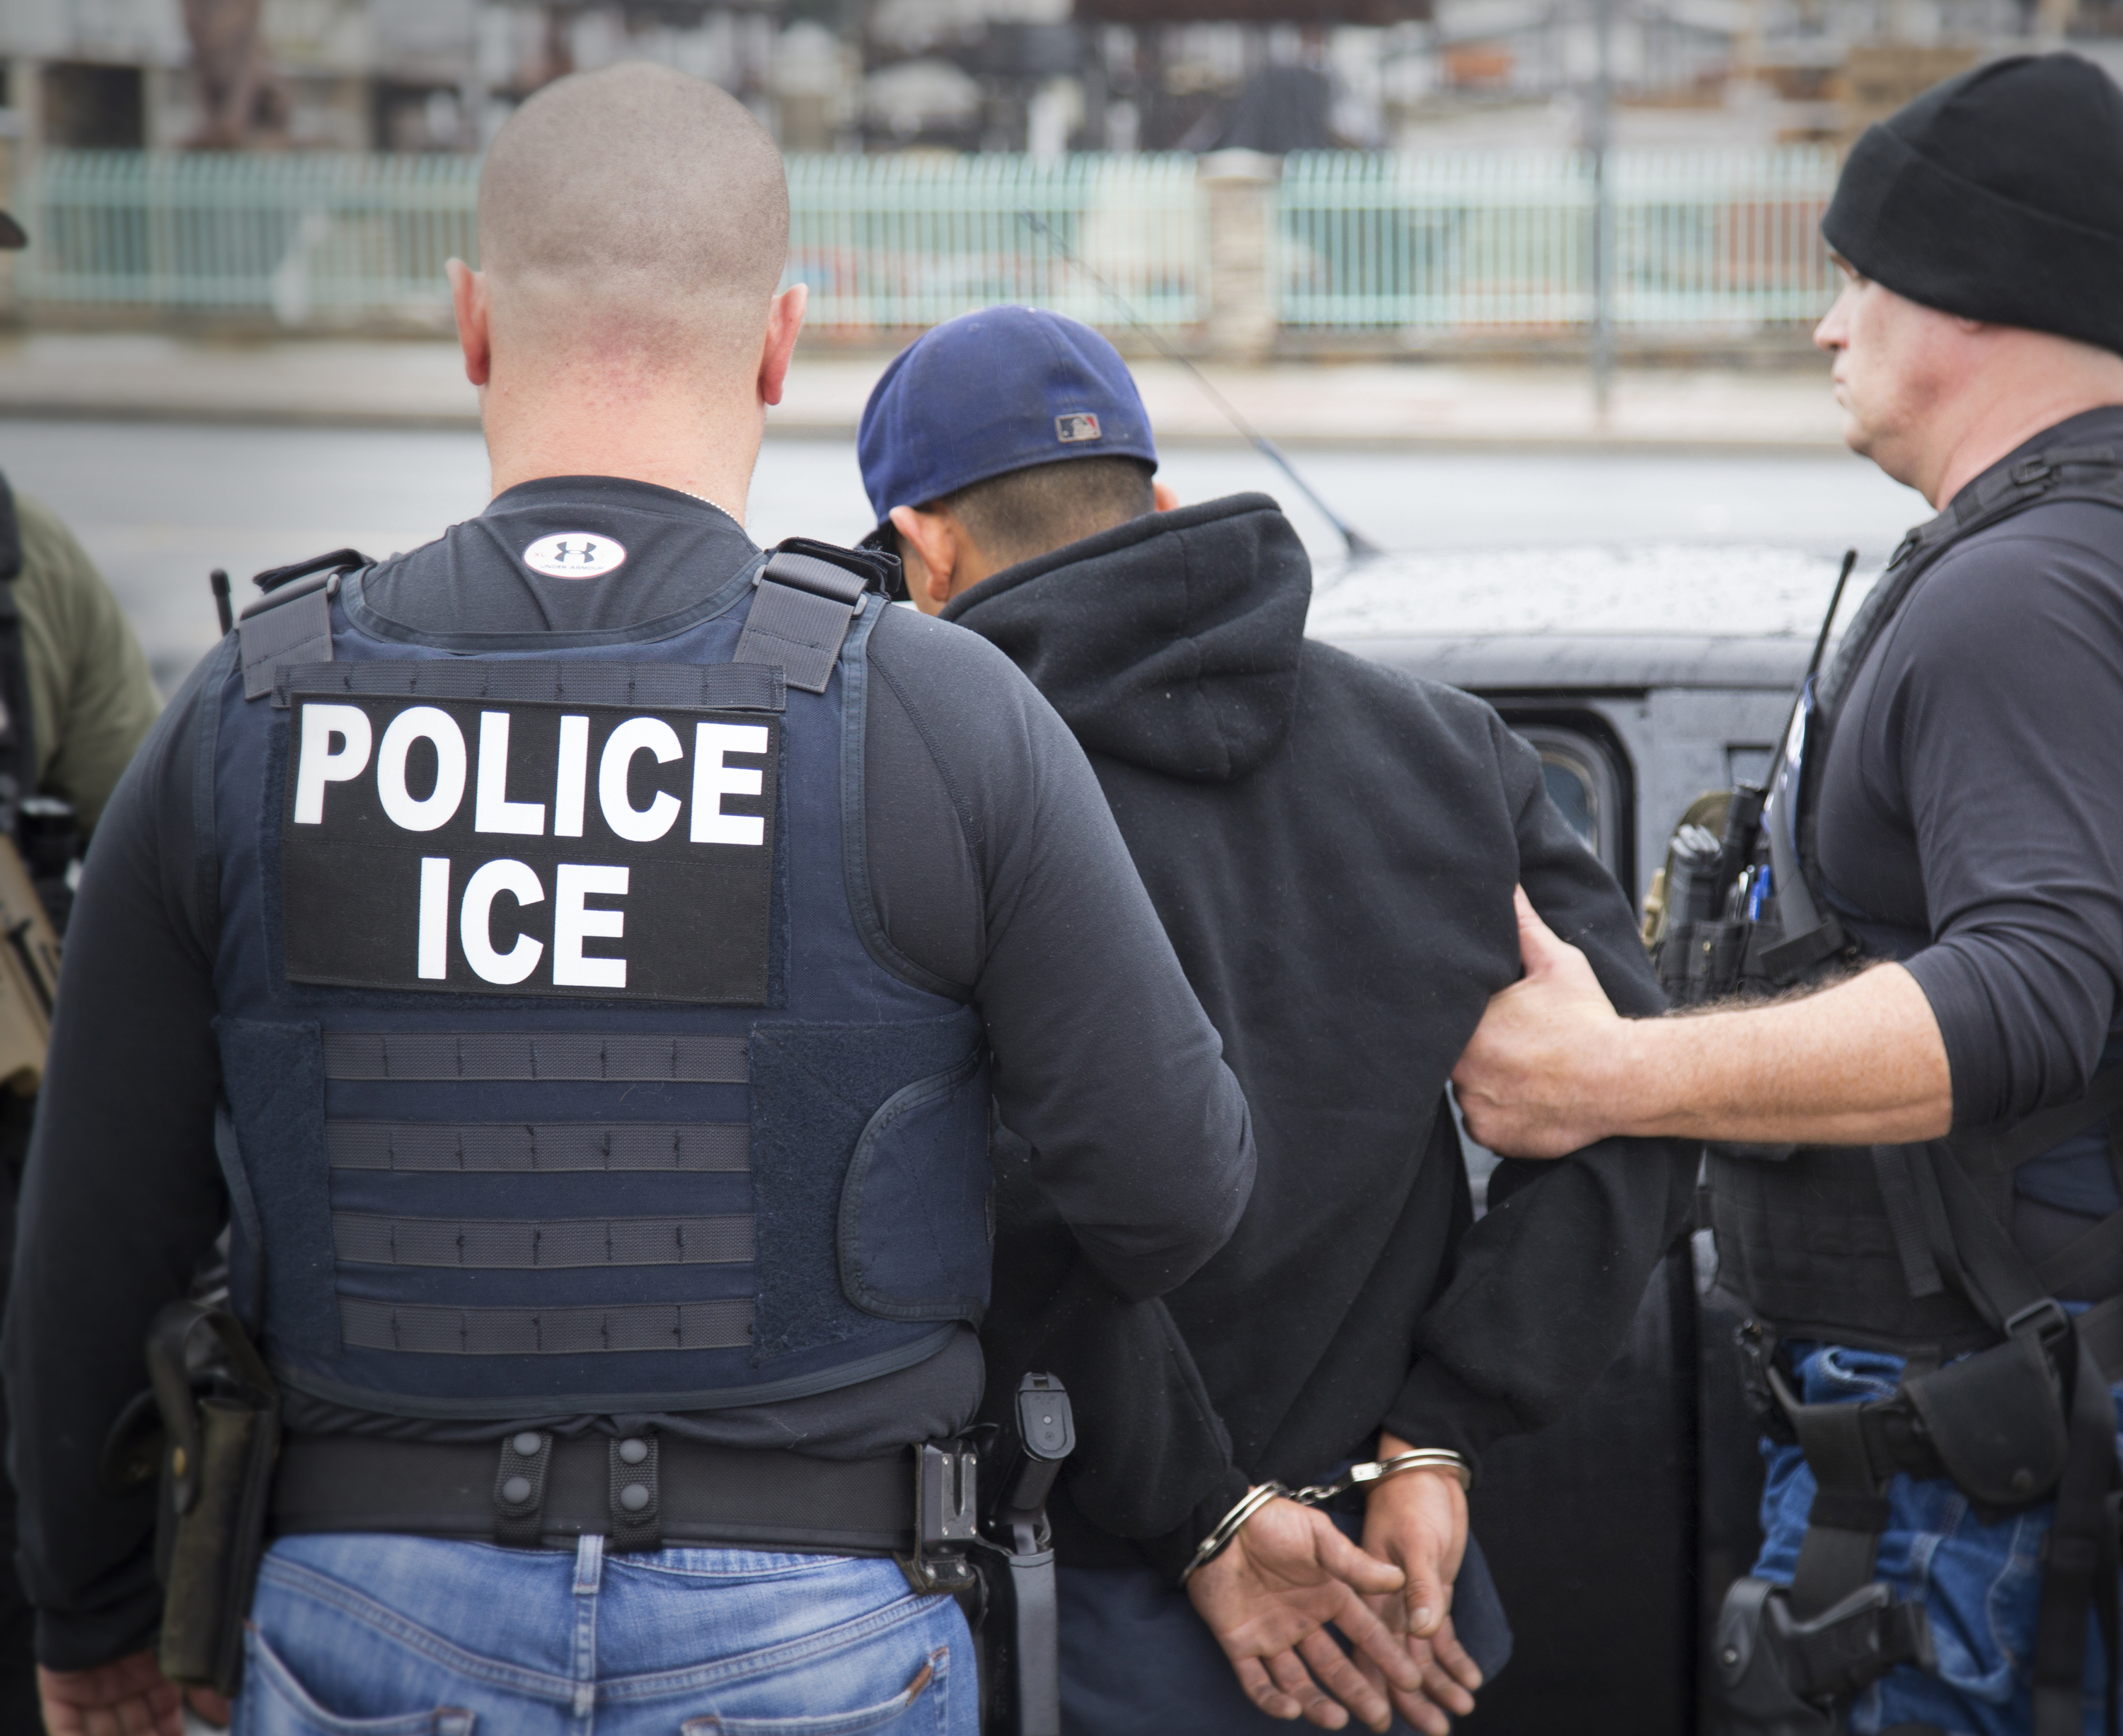 In this Feb. 7, 2017, photo released by U.S. Immigration and Customs Enforcement shows foreign nationals being arrested  during an operation conducted by U.S. Immigration and Customs Enforcement (ICE) aimed at immigration fugitives, re-entrants and a